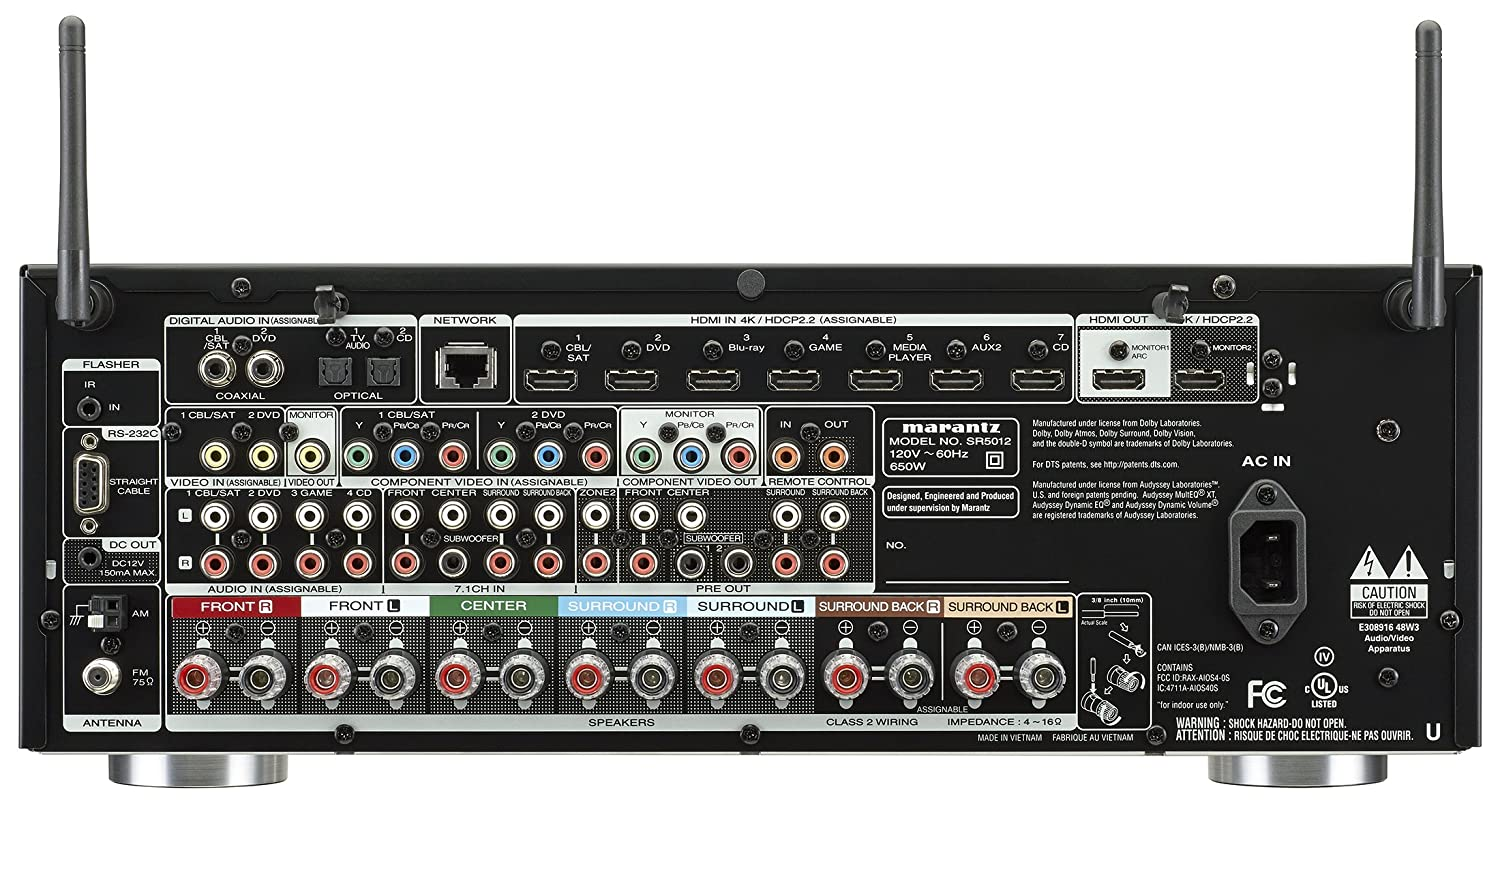 Marantz SR5012 7.2 Channel Full 4K Ultra HD Network AV Surround Receiver with HEOS Black, Works with Alexa Discontinued by Manufacturer